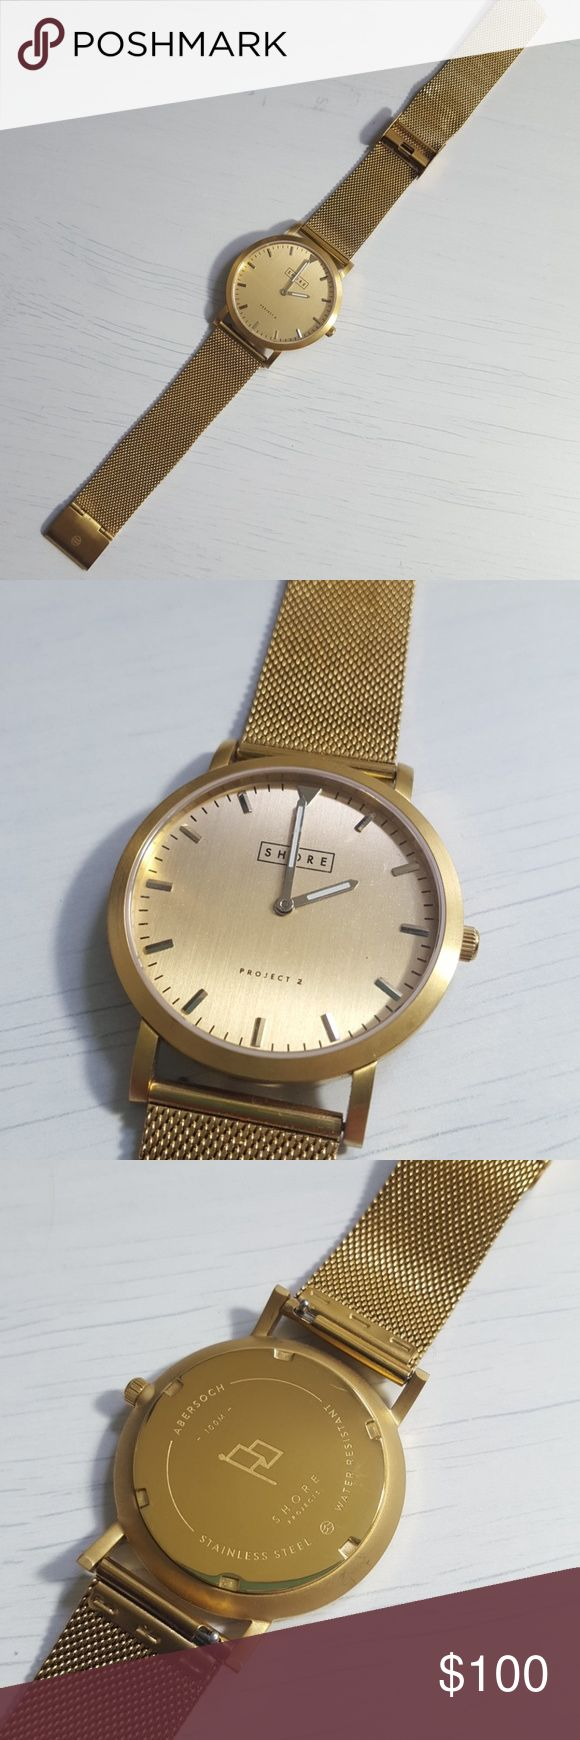 Gold Shore Watch Project 2 Brand new never worn  Does not come with box 100m water resistant and stainless steel  Open to offers shore Accessories Watches